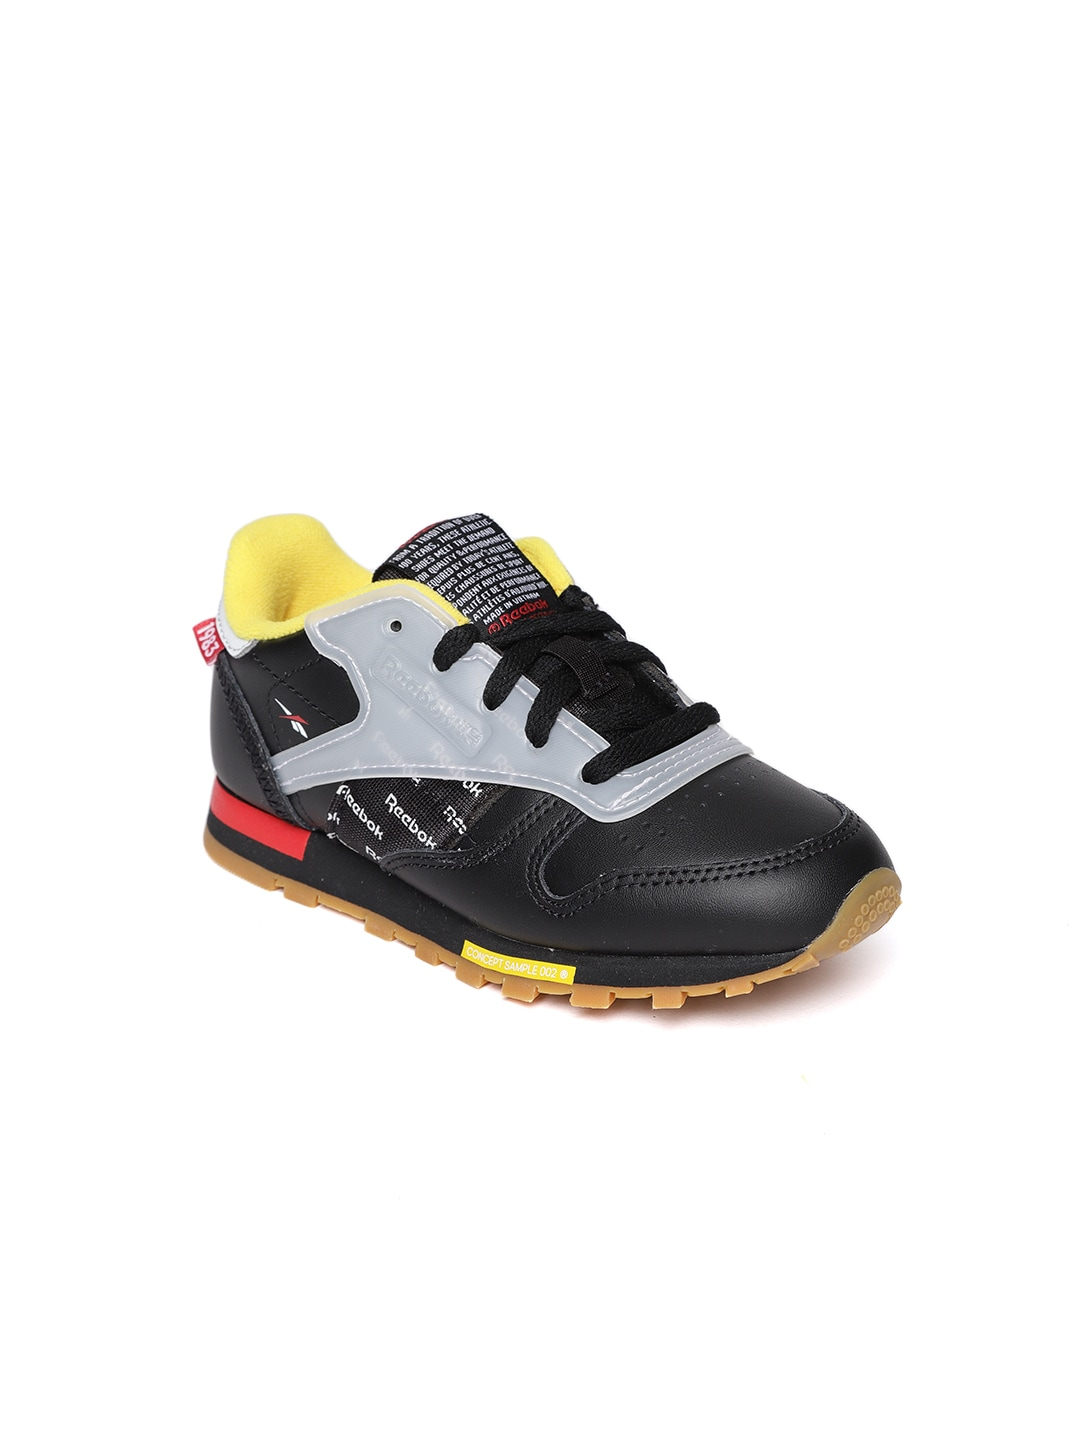 f9d0ba9b899 Reebok Leather Shoes - Buy Reebok Leather Shoes online in India